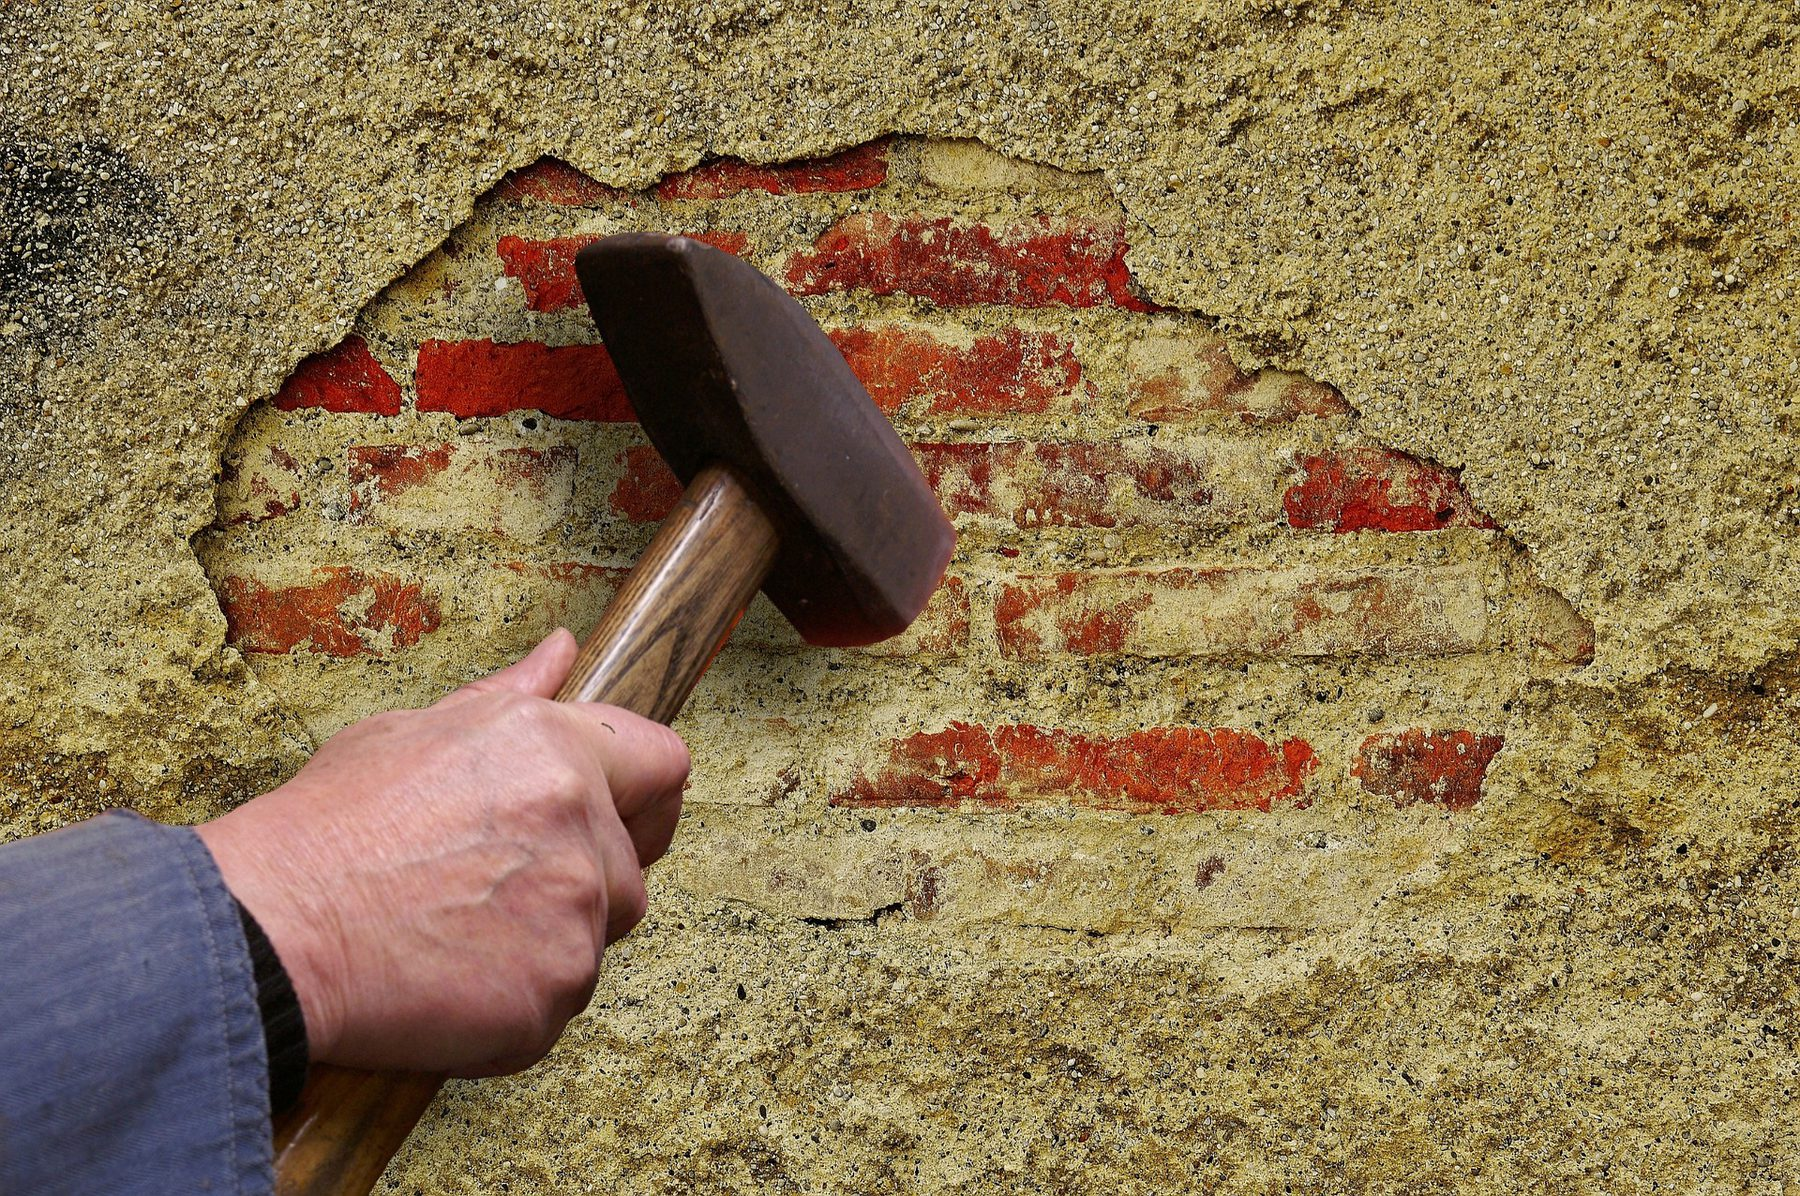 Job Role Image (Plasterer: Hammer Chipping at Plaster)